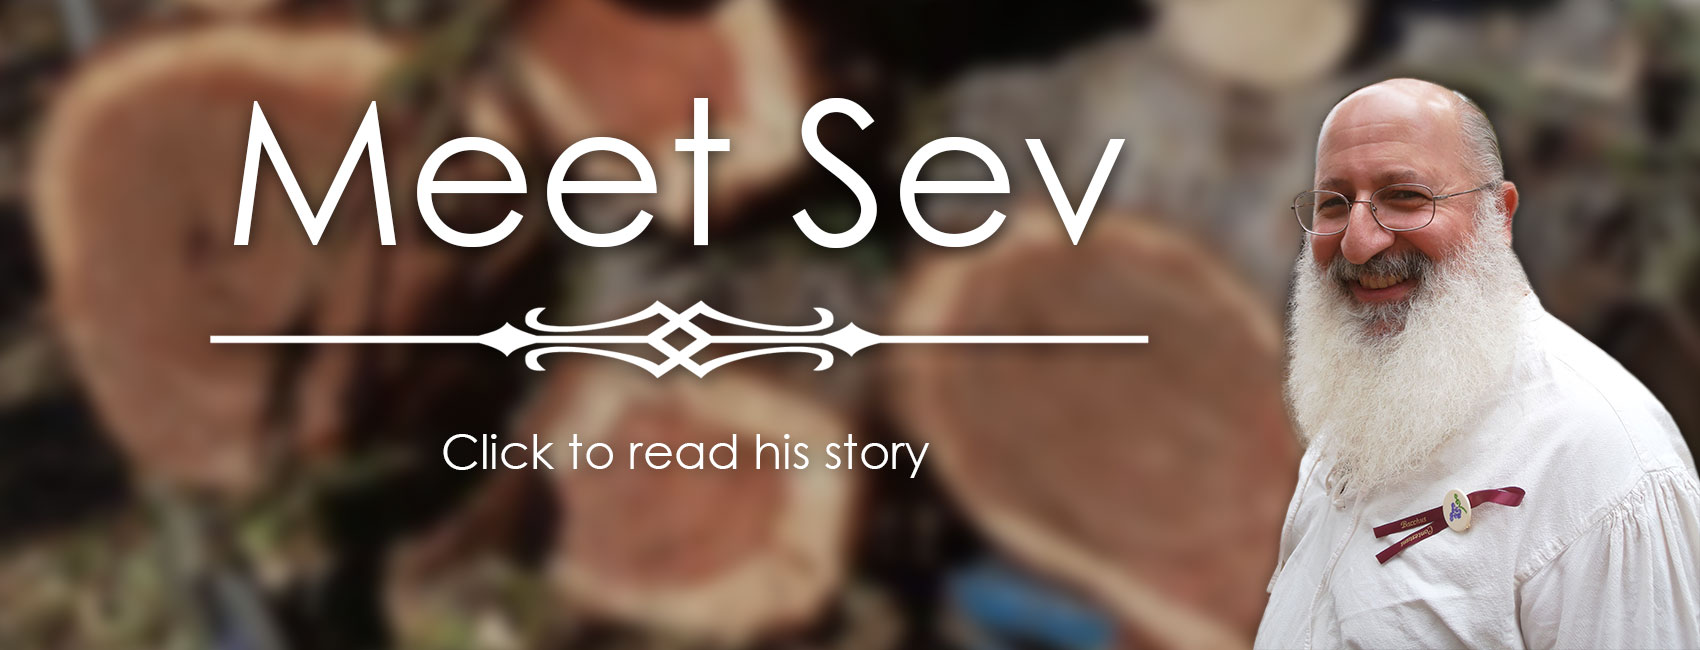 Click to read about Sev